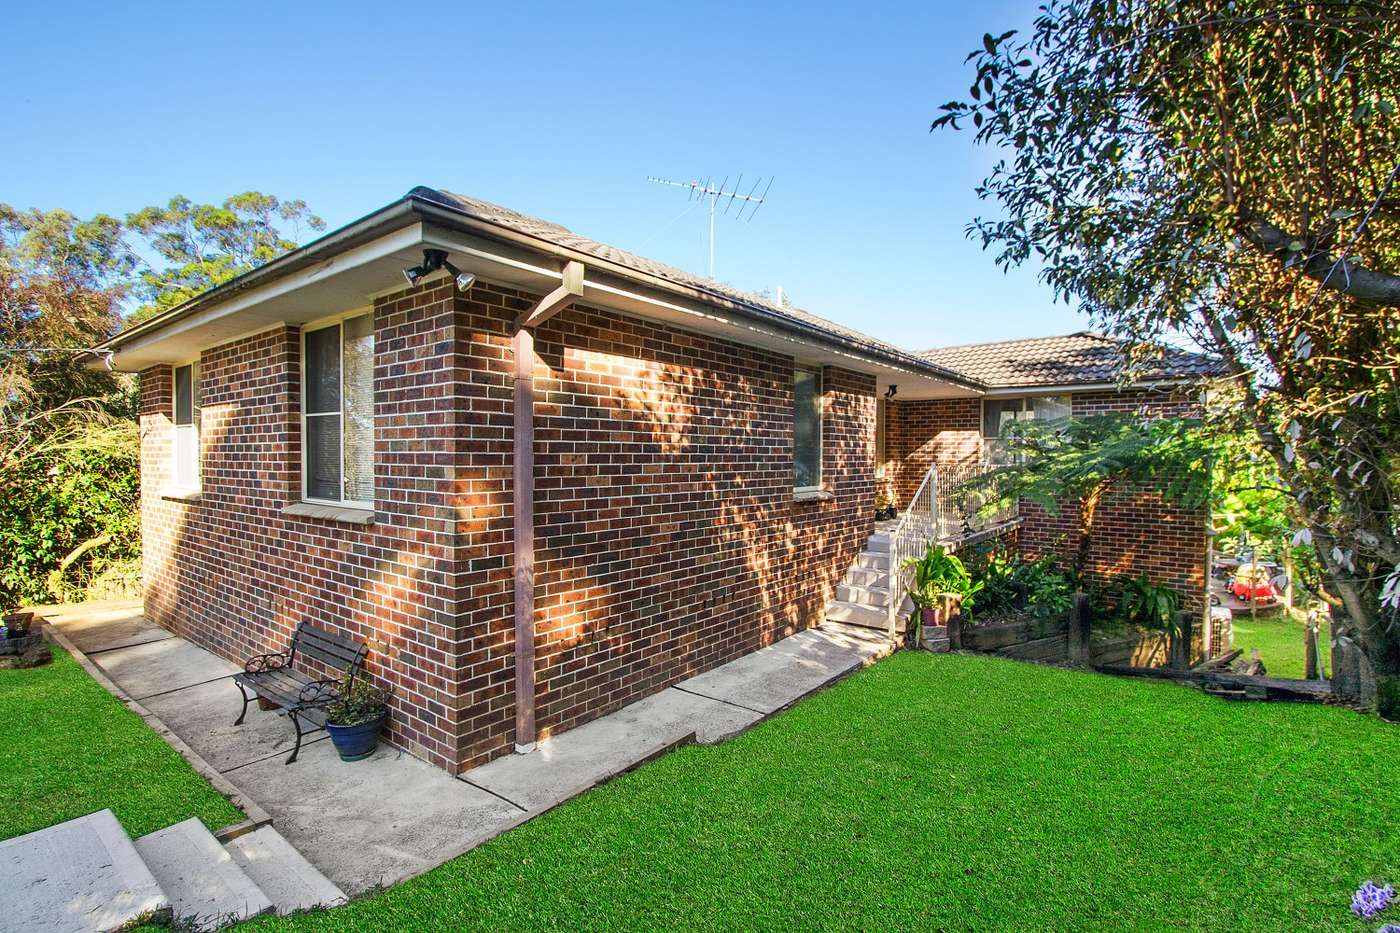 Main view of Homely house listing, 24 Lieutenant Bowen Road, Bowen Mountain, NSW 2753